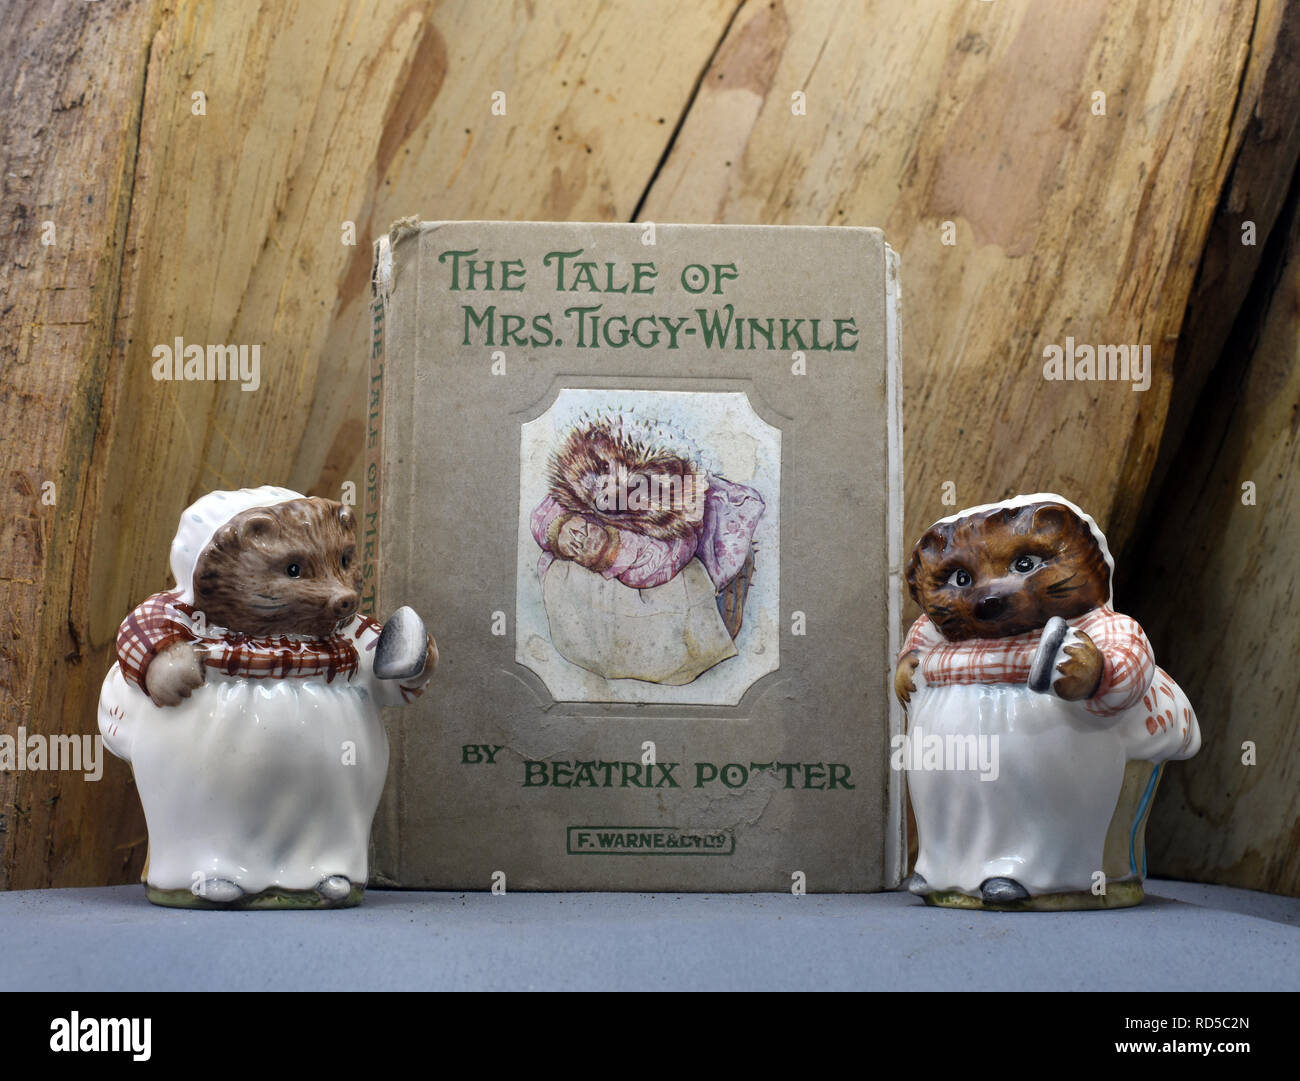 Vintage Beatrix Potter book of the Tale of Mrs Tiggy-Winkle and two Beswick Pottery figures. Still Life - Stock Image